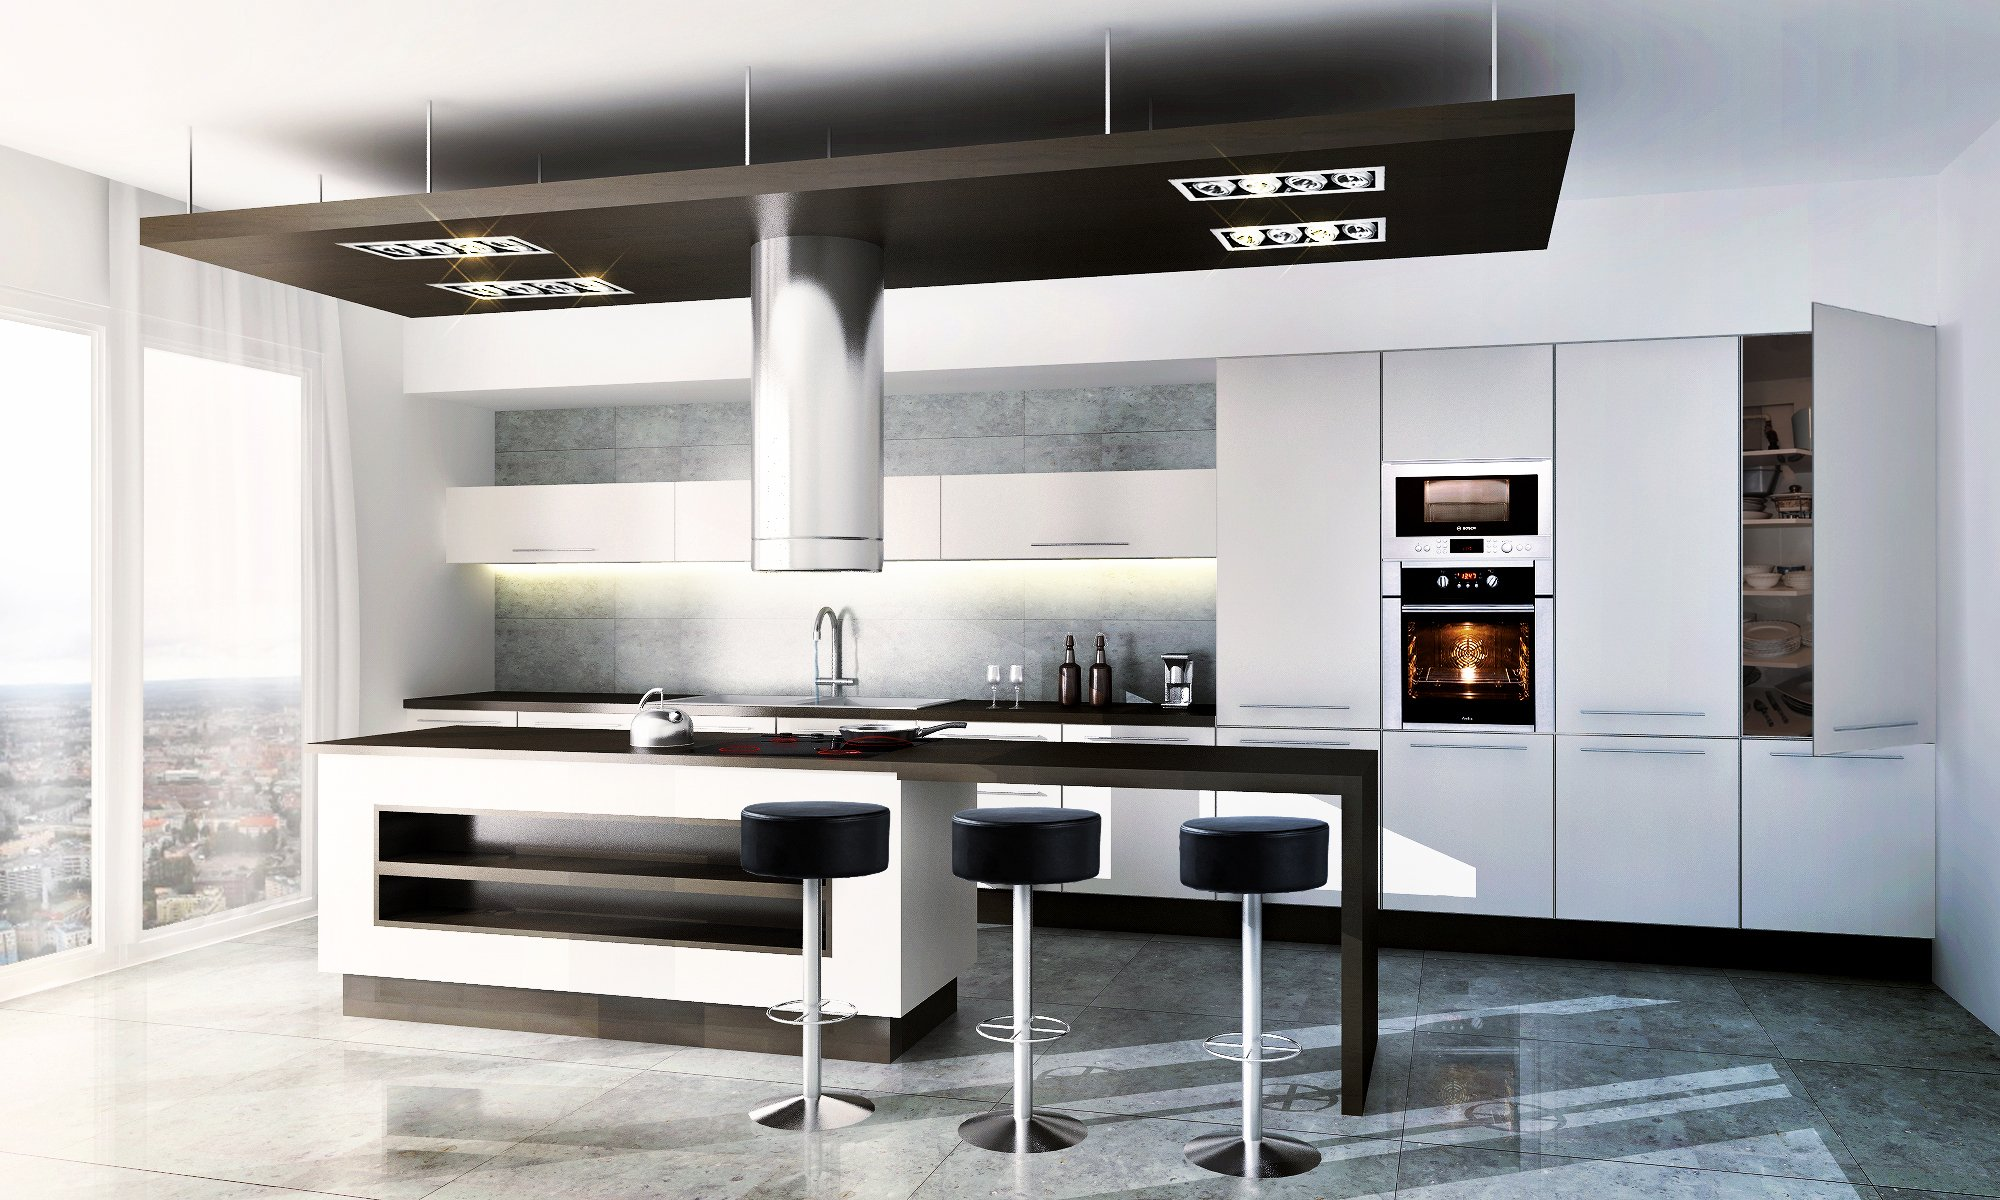 Kitchen 3D Model Vizblog  Blog With Visualisations  Free 3D Models  Free 3D Base